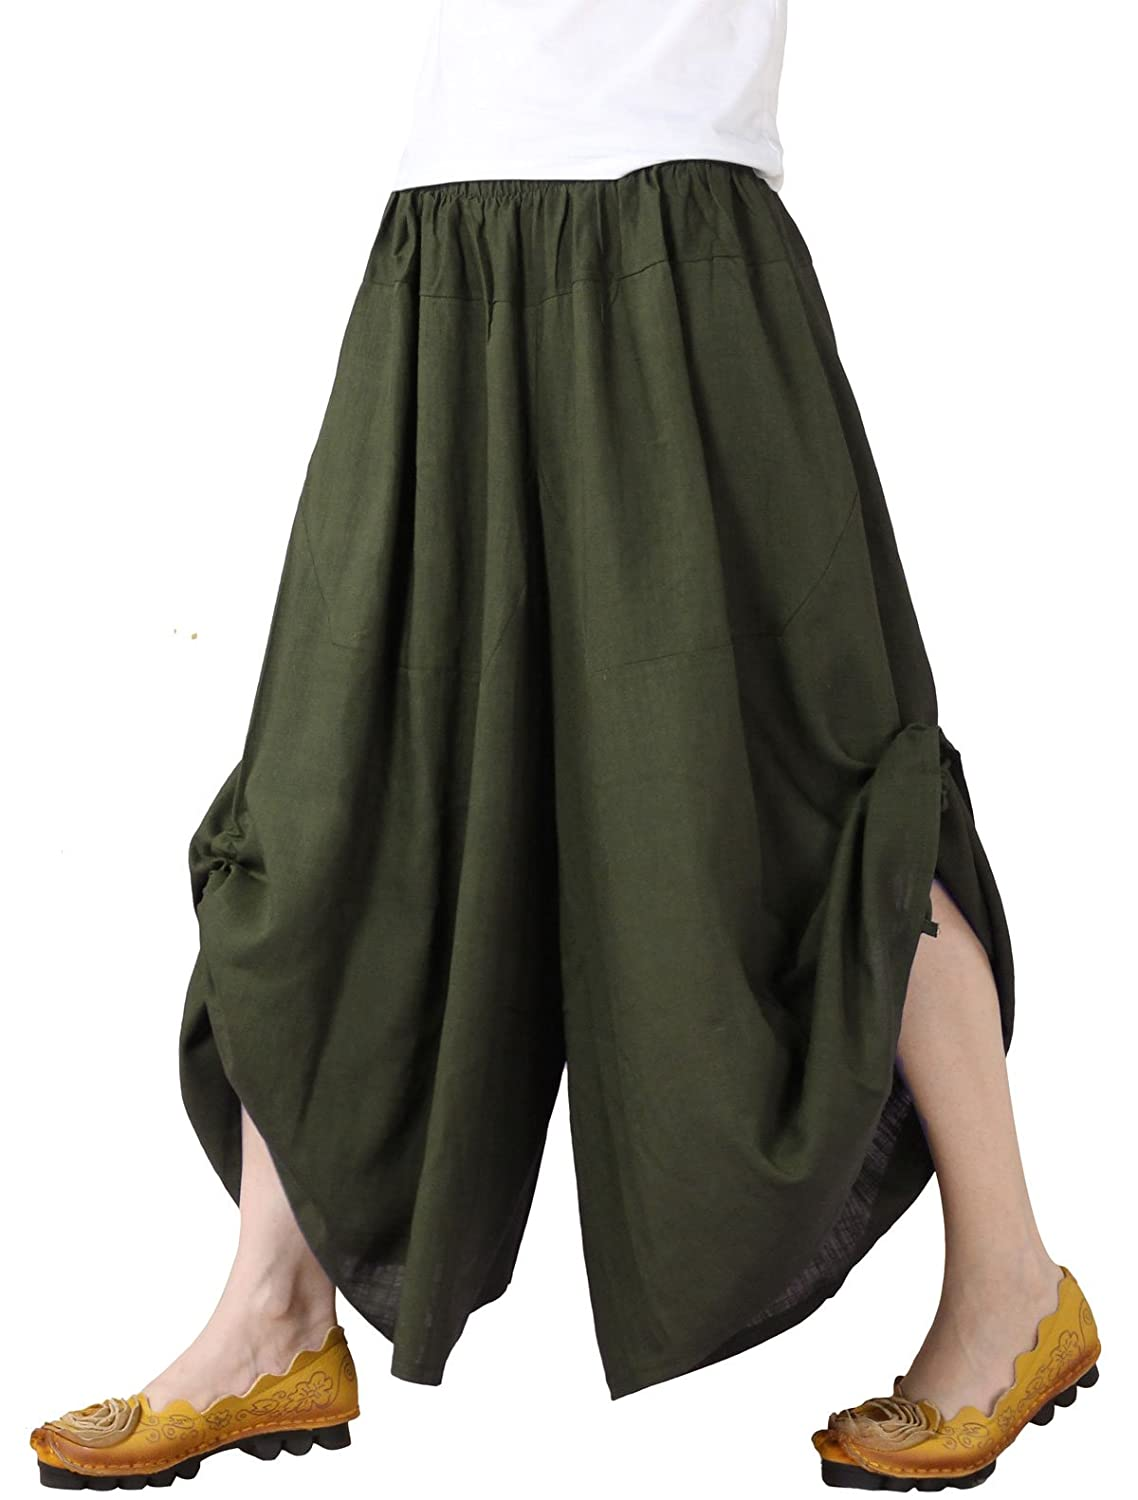 746cb4241c Mordenmiss Women's New Elastic Waist Wide Leg Pants with Pockets at Amazon  Women's Clothing store: